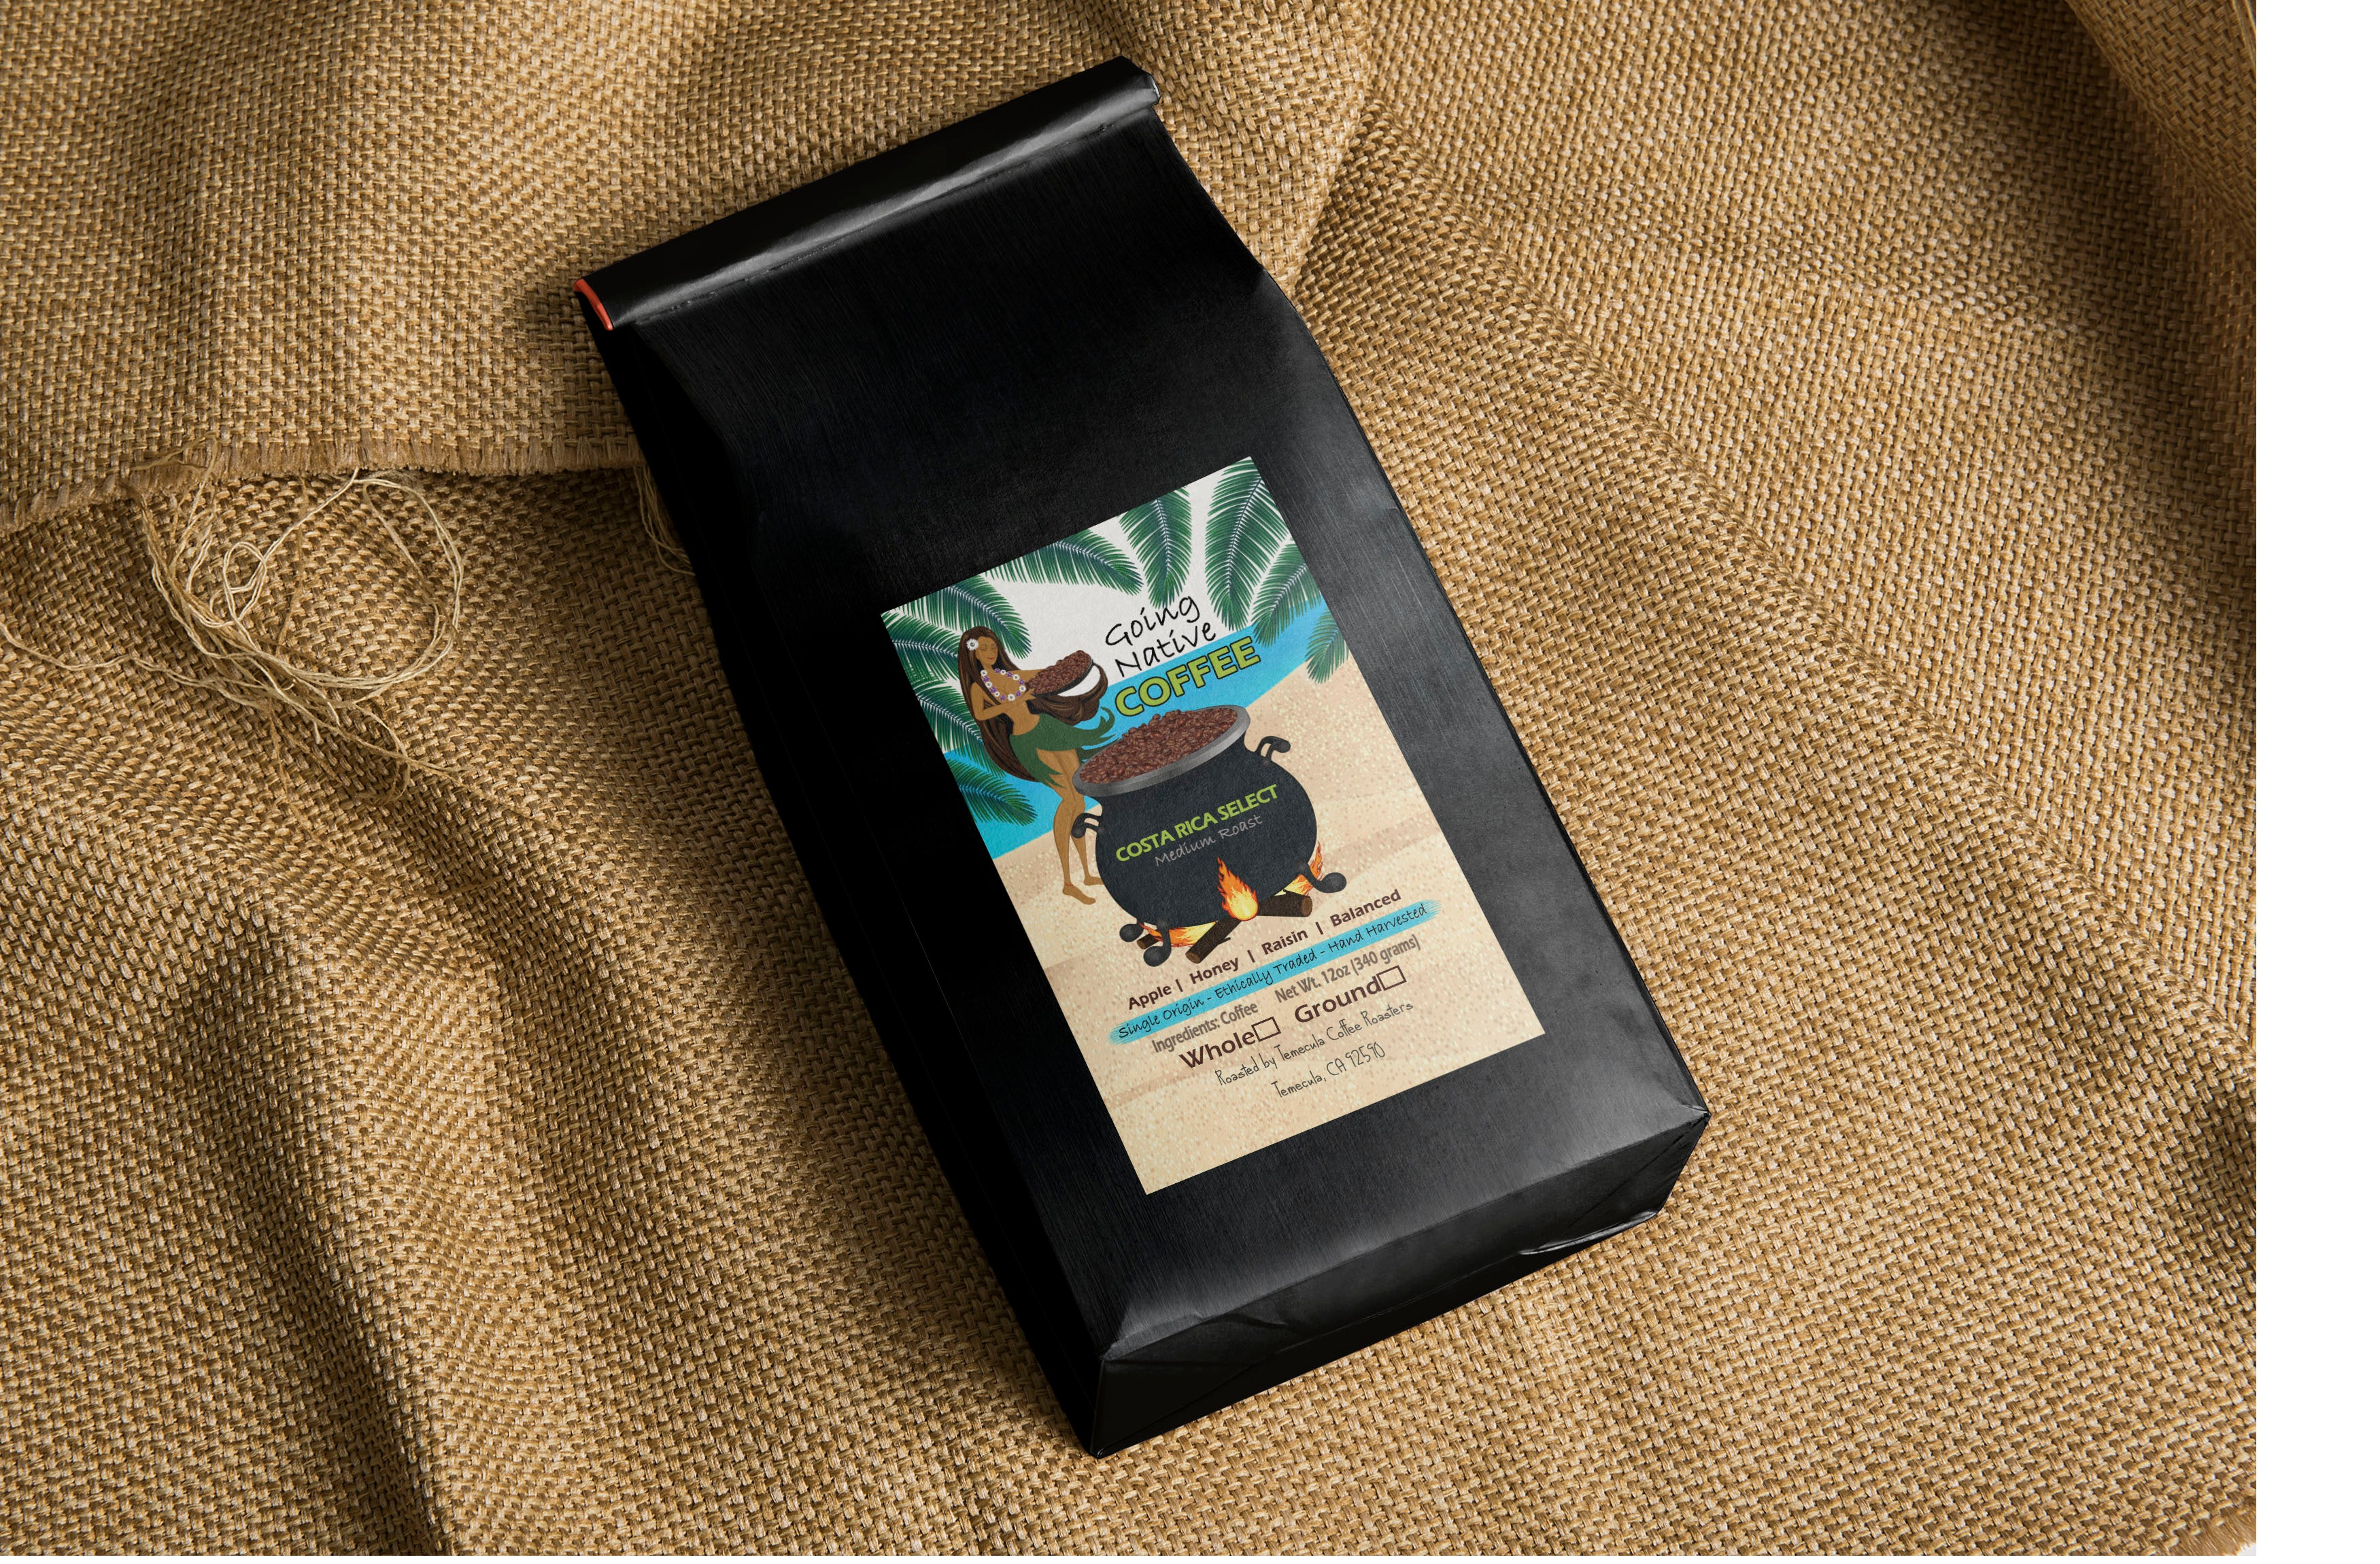 Costa Rica Select Subscription - Going Native Coffee Club